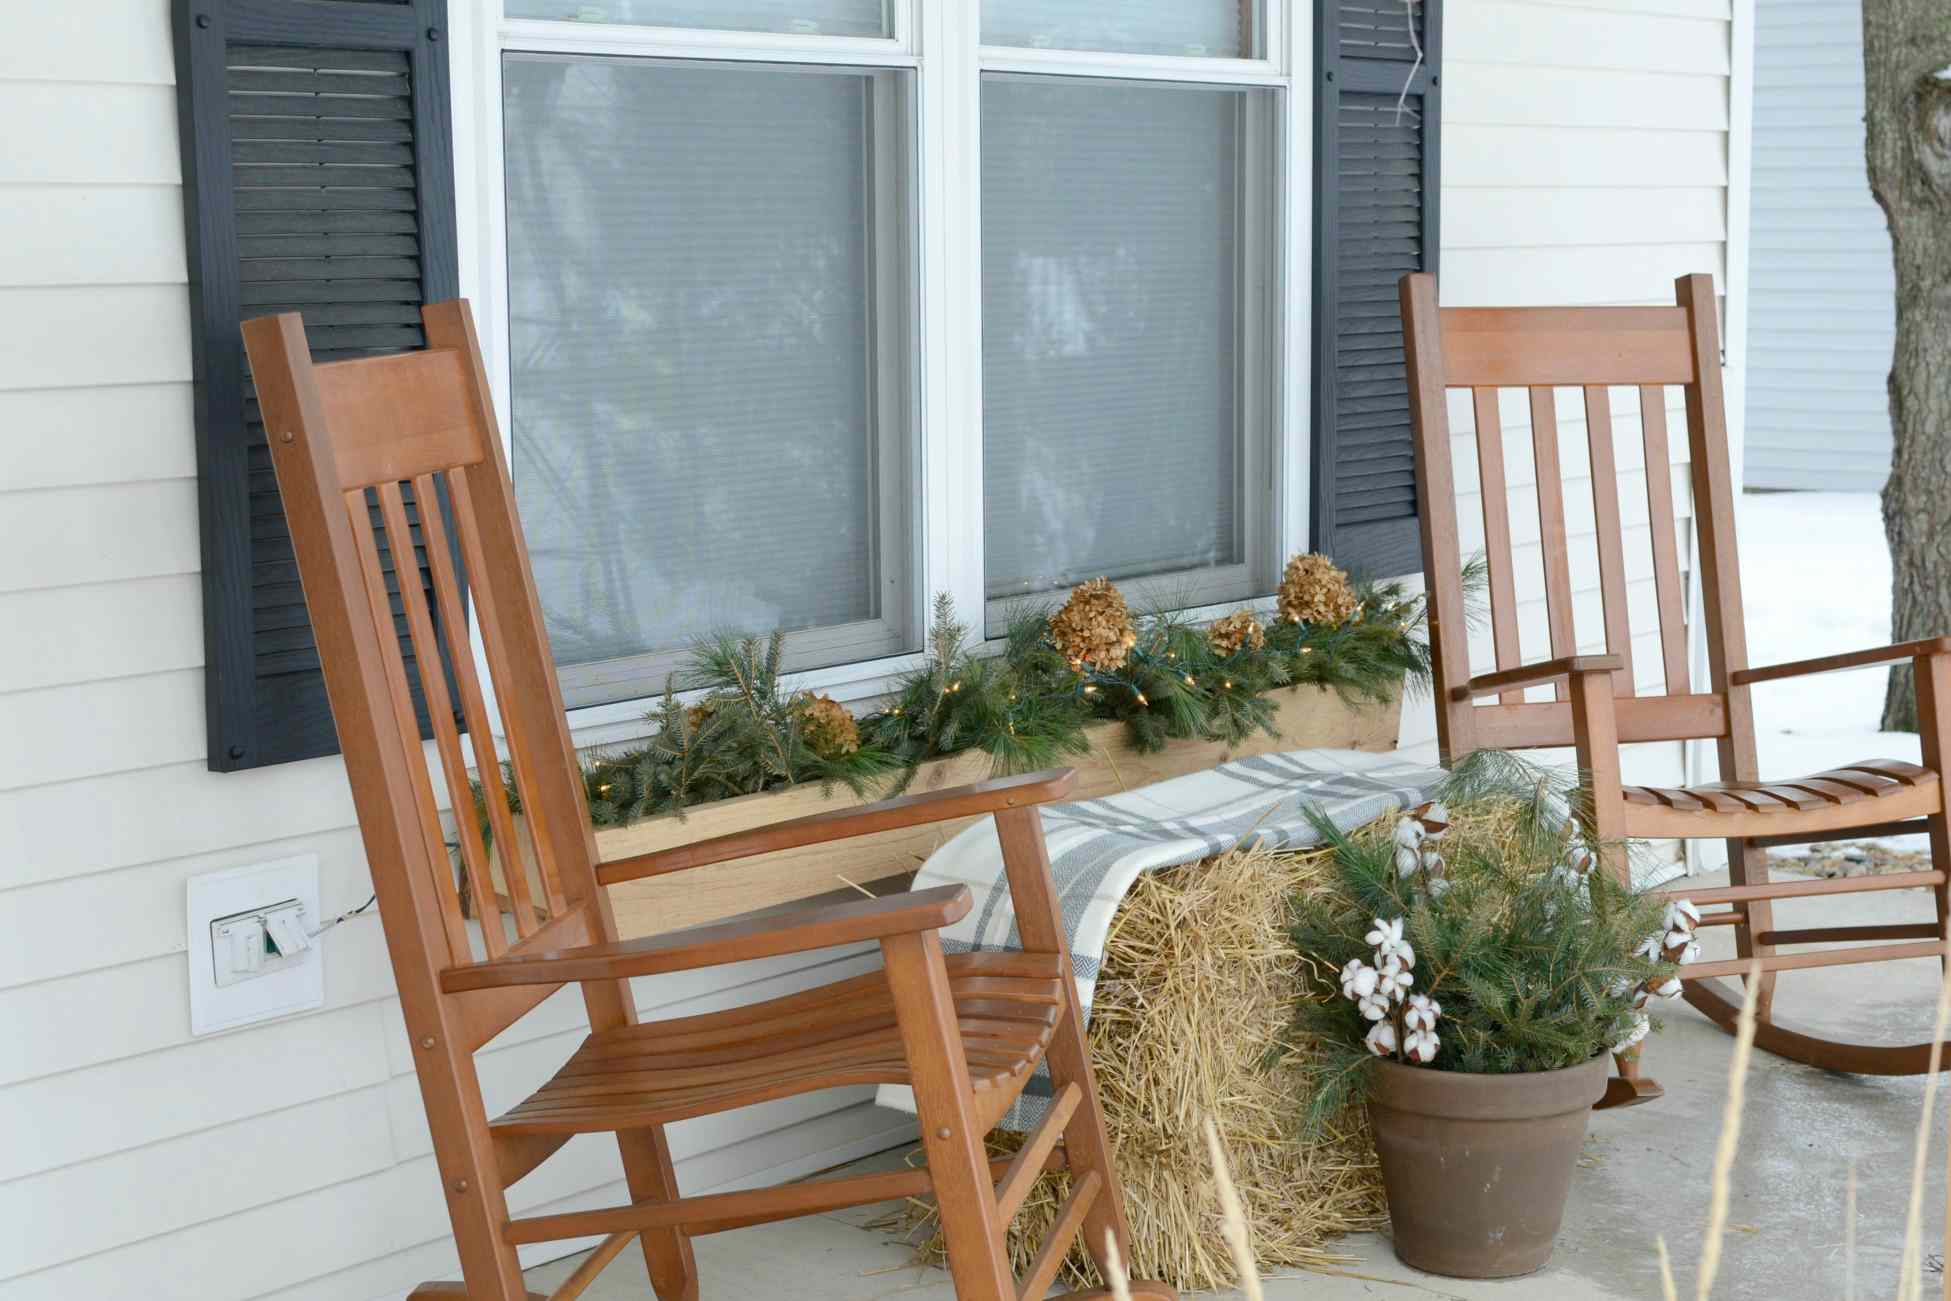 Winter porch window boxes and cotton ball planters